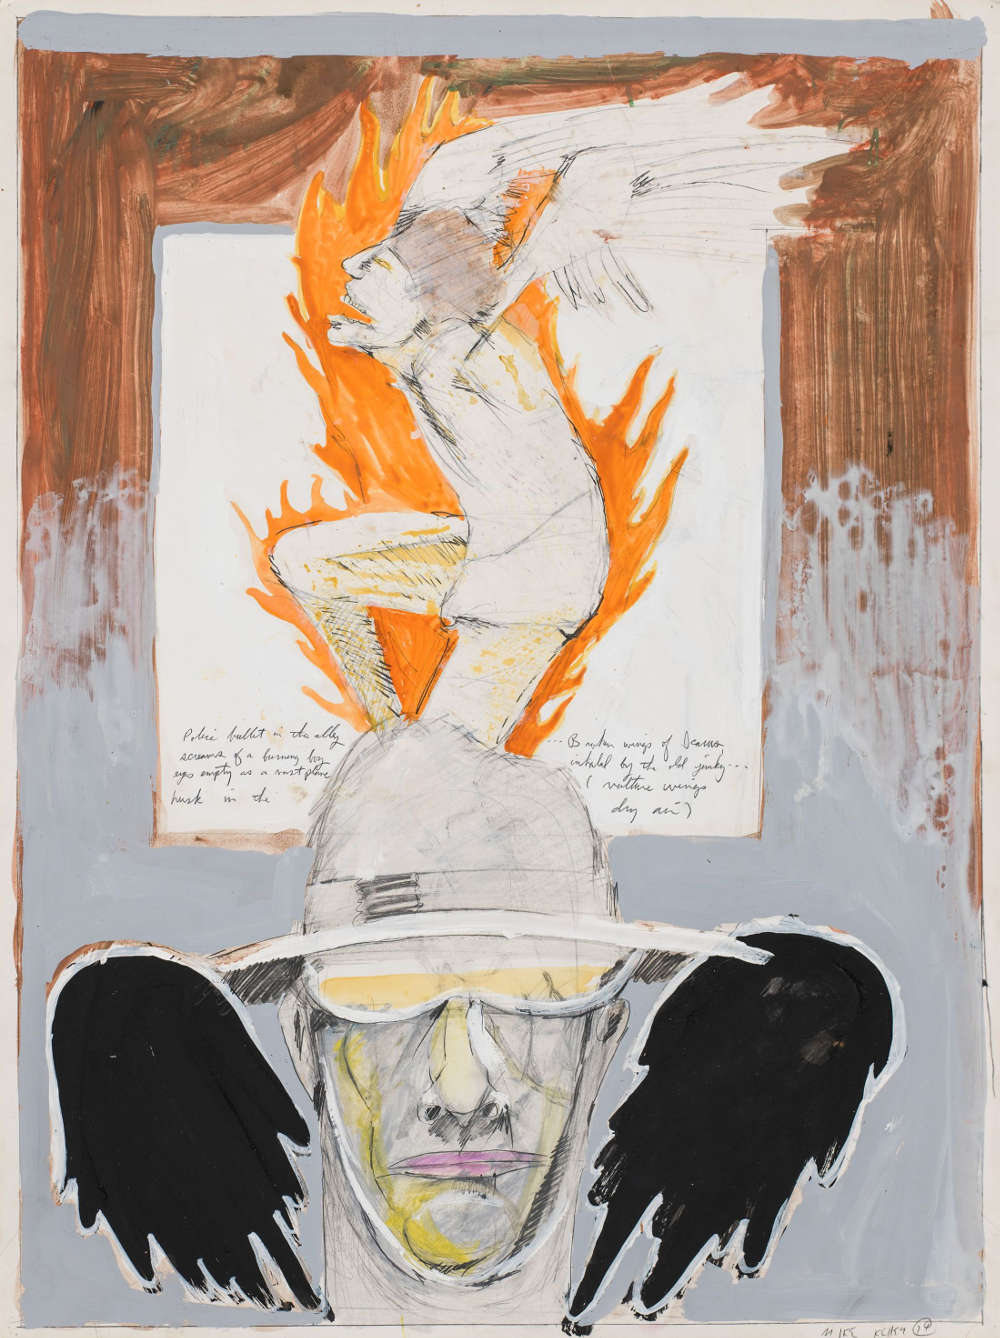 Mike Kelley, Untitled (Student Drawing), 1974. Mixed media on paper 61 x 45.7 cm / 24 x 18 in. Photo: Fredrik Nilsen © Mike Kelley Foundation for the Arts. All Rights Reserved/VAGA at ARS, NY, Courtesy the Foundation and Hauser & Wirth.